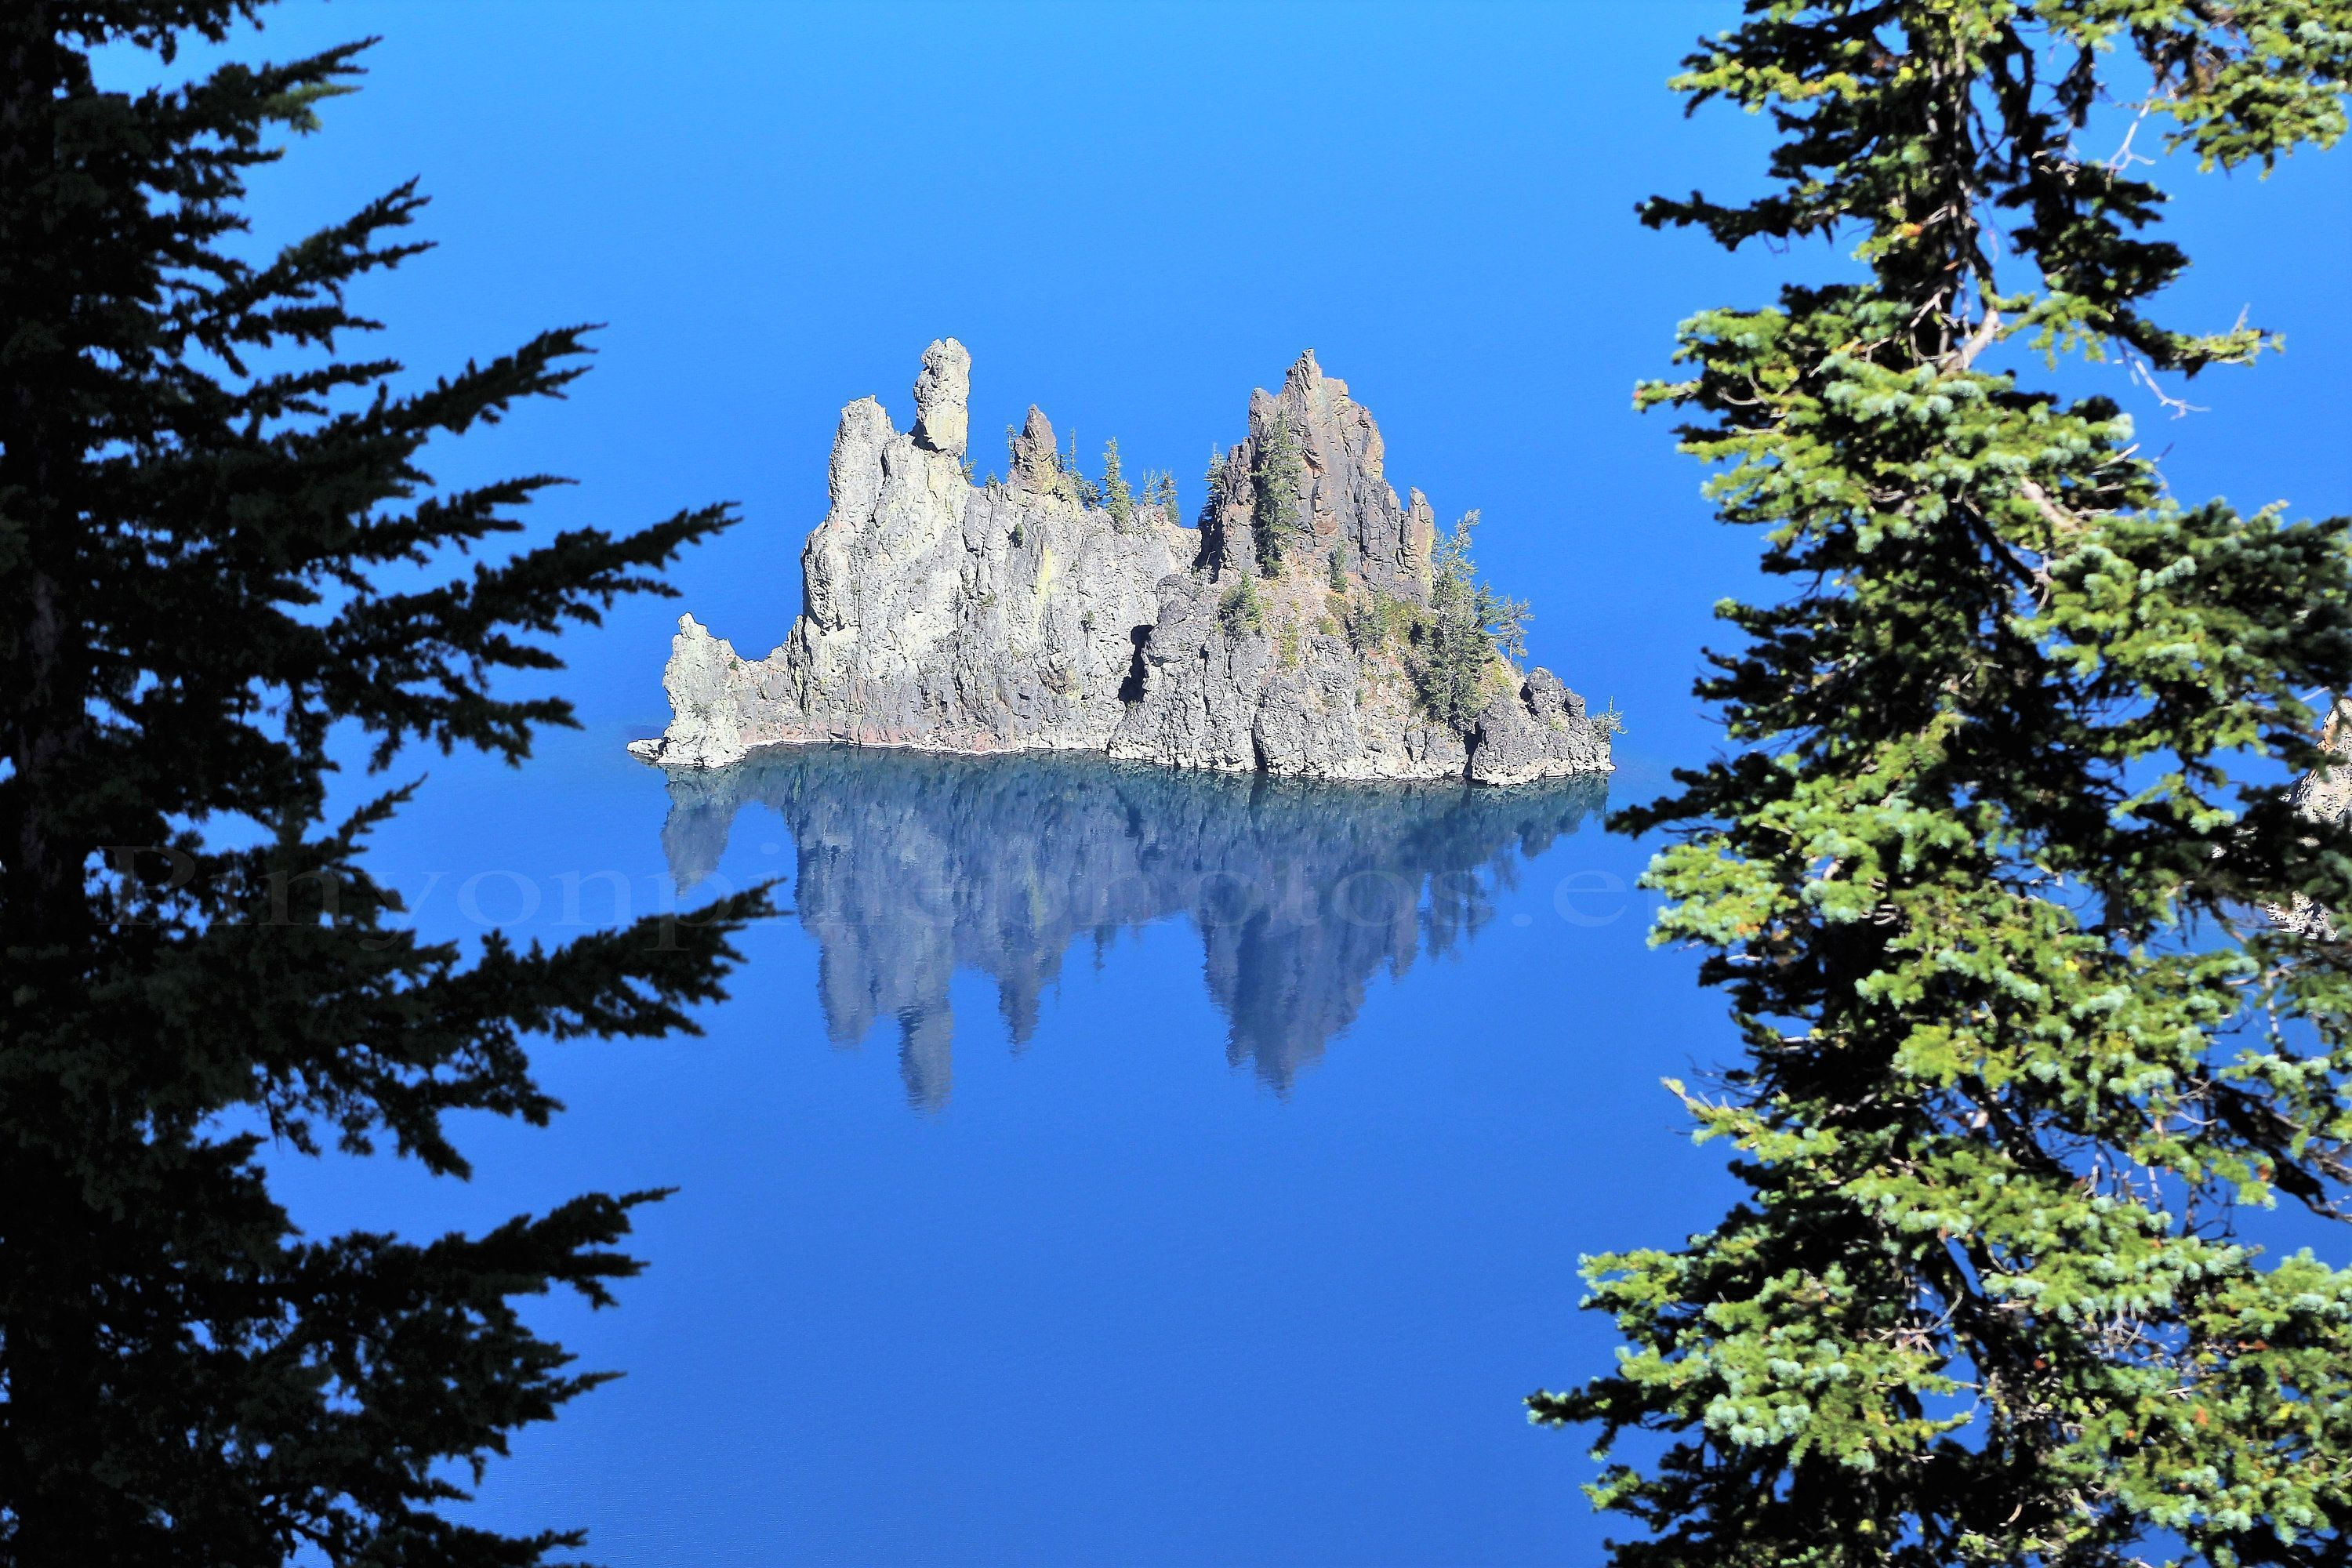 Phantom Ship Rock in Crater Lake National Park. Available in a fine art print, gallery wrapped canvas or photo greeting card #craterlakenationalpark Phantom Ship Rock in Crater Lake National Park. Available in a fine art print, gallery wrapped canvas or photo greeting card #craterlakenationalpark Phantom Ship Rock in Crater Lake National Park. Available in a fine art print, gallery wrapped canvas or photo greeting card #craterlakenationalpark Phantom Ship Rock in Crater Lake National Park. Avail #craterlakenationalpark